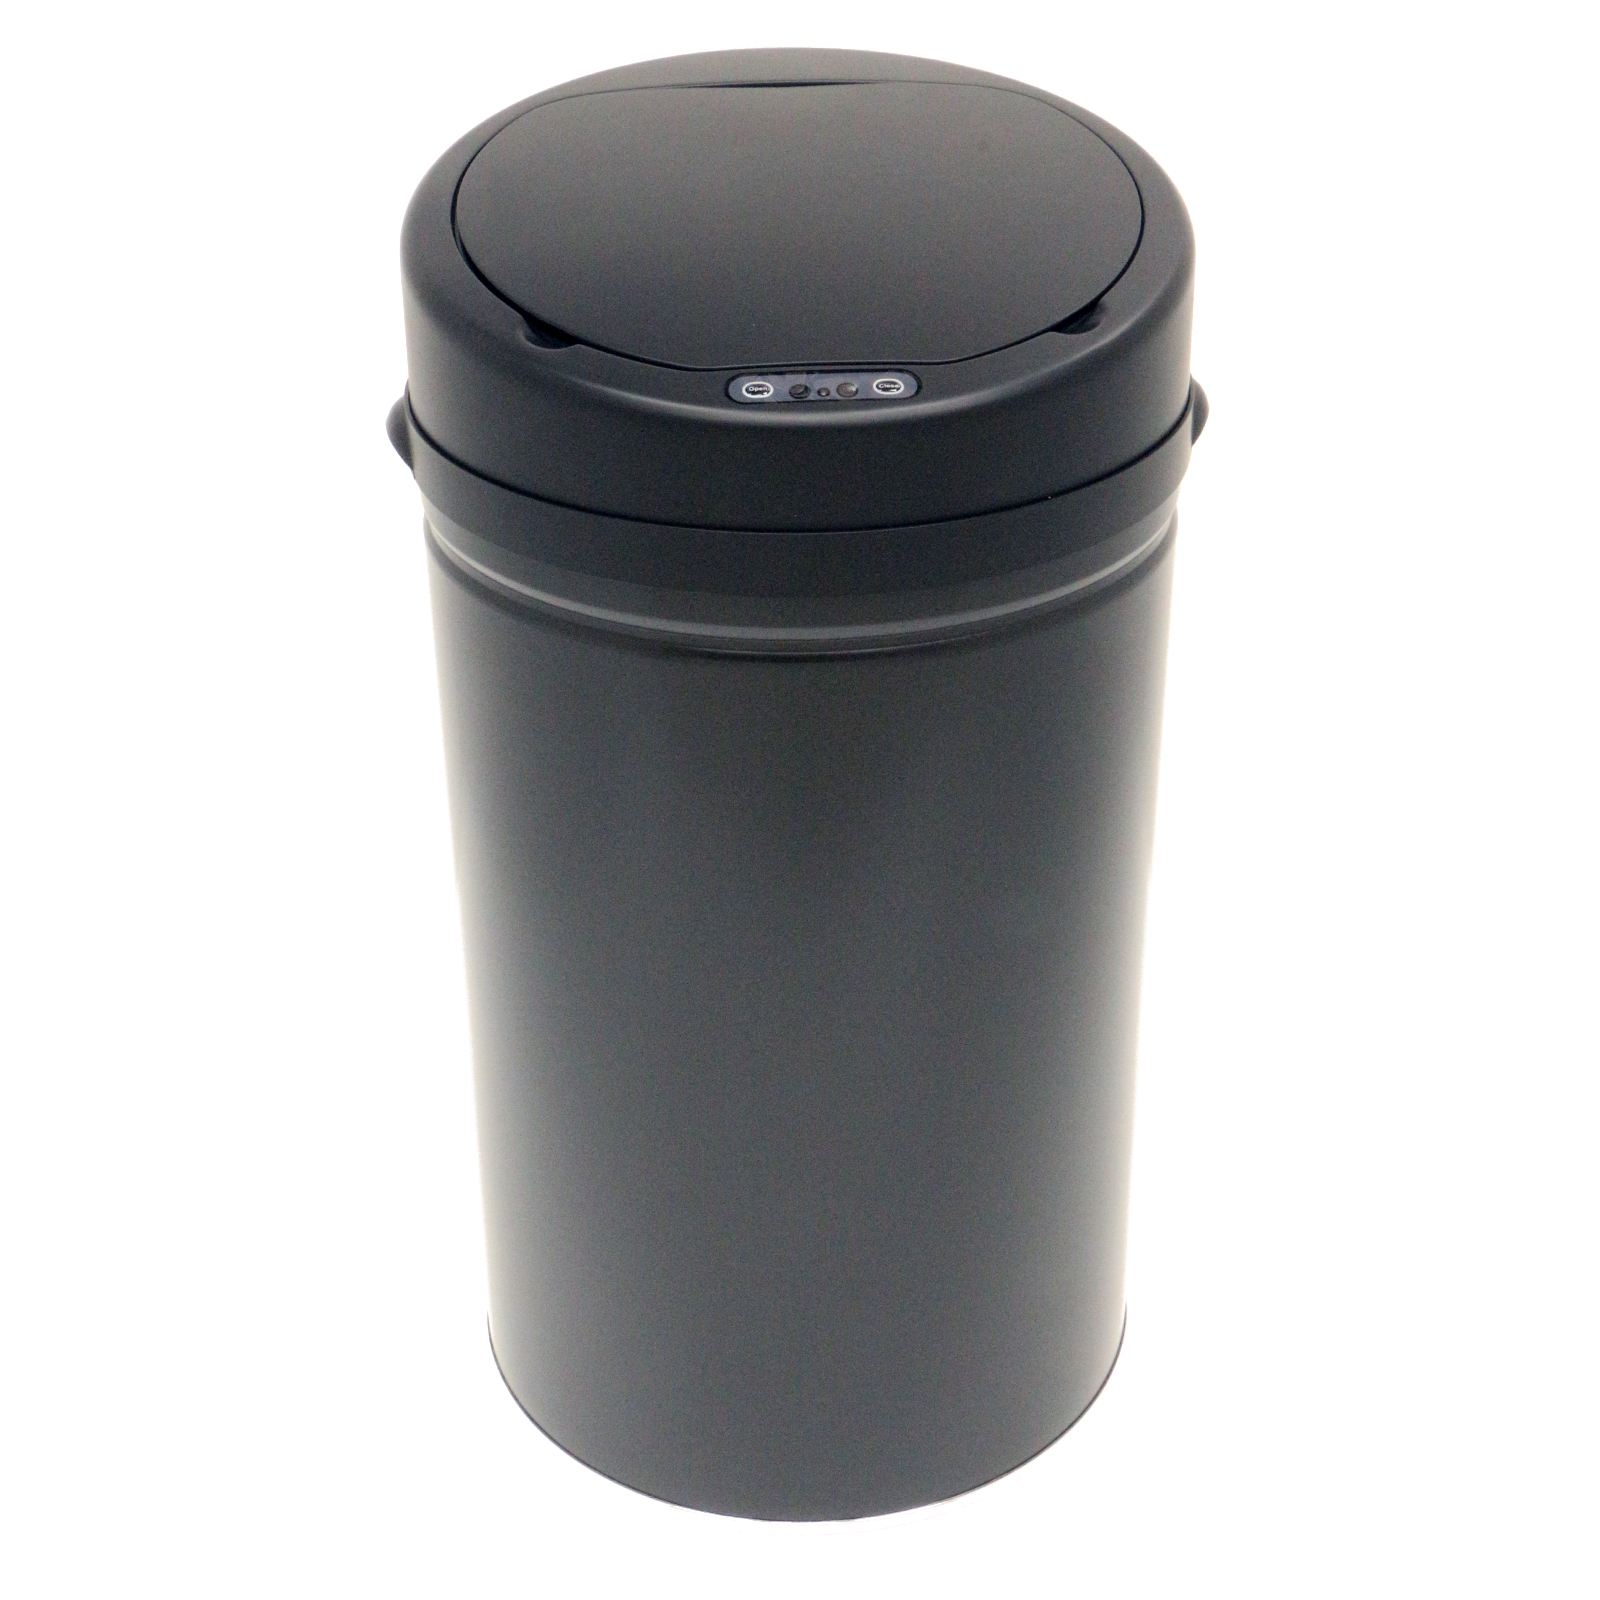 Kitchen Waste Bins: 30L 50L Stainless Steel Auto Sensor Kitchen Waste Bin